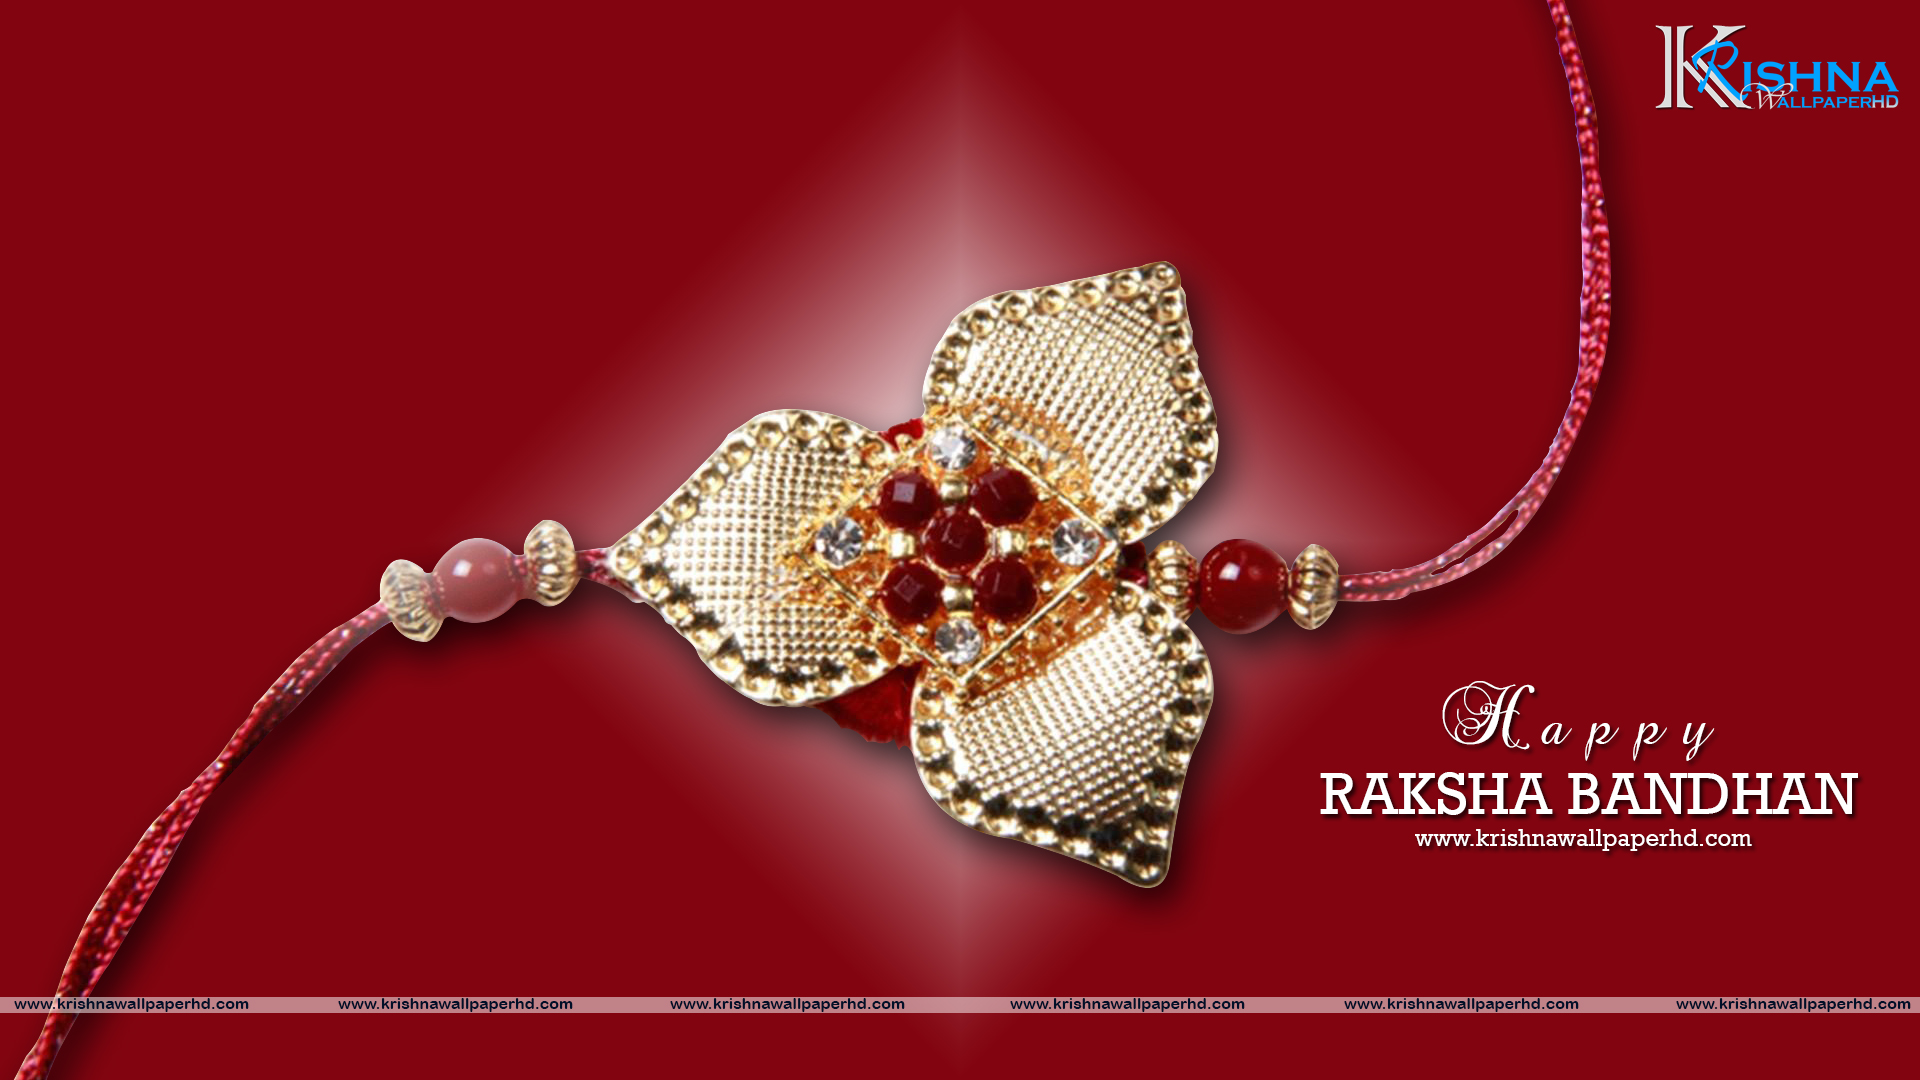 Raksha Bandhan Wallpaper Full HD